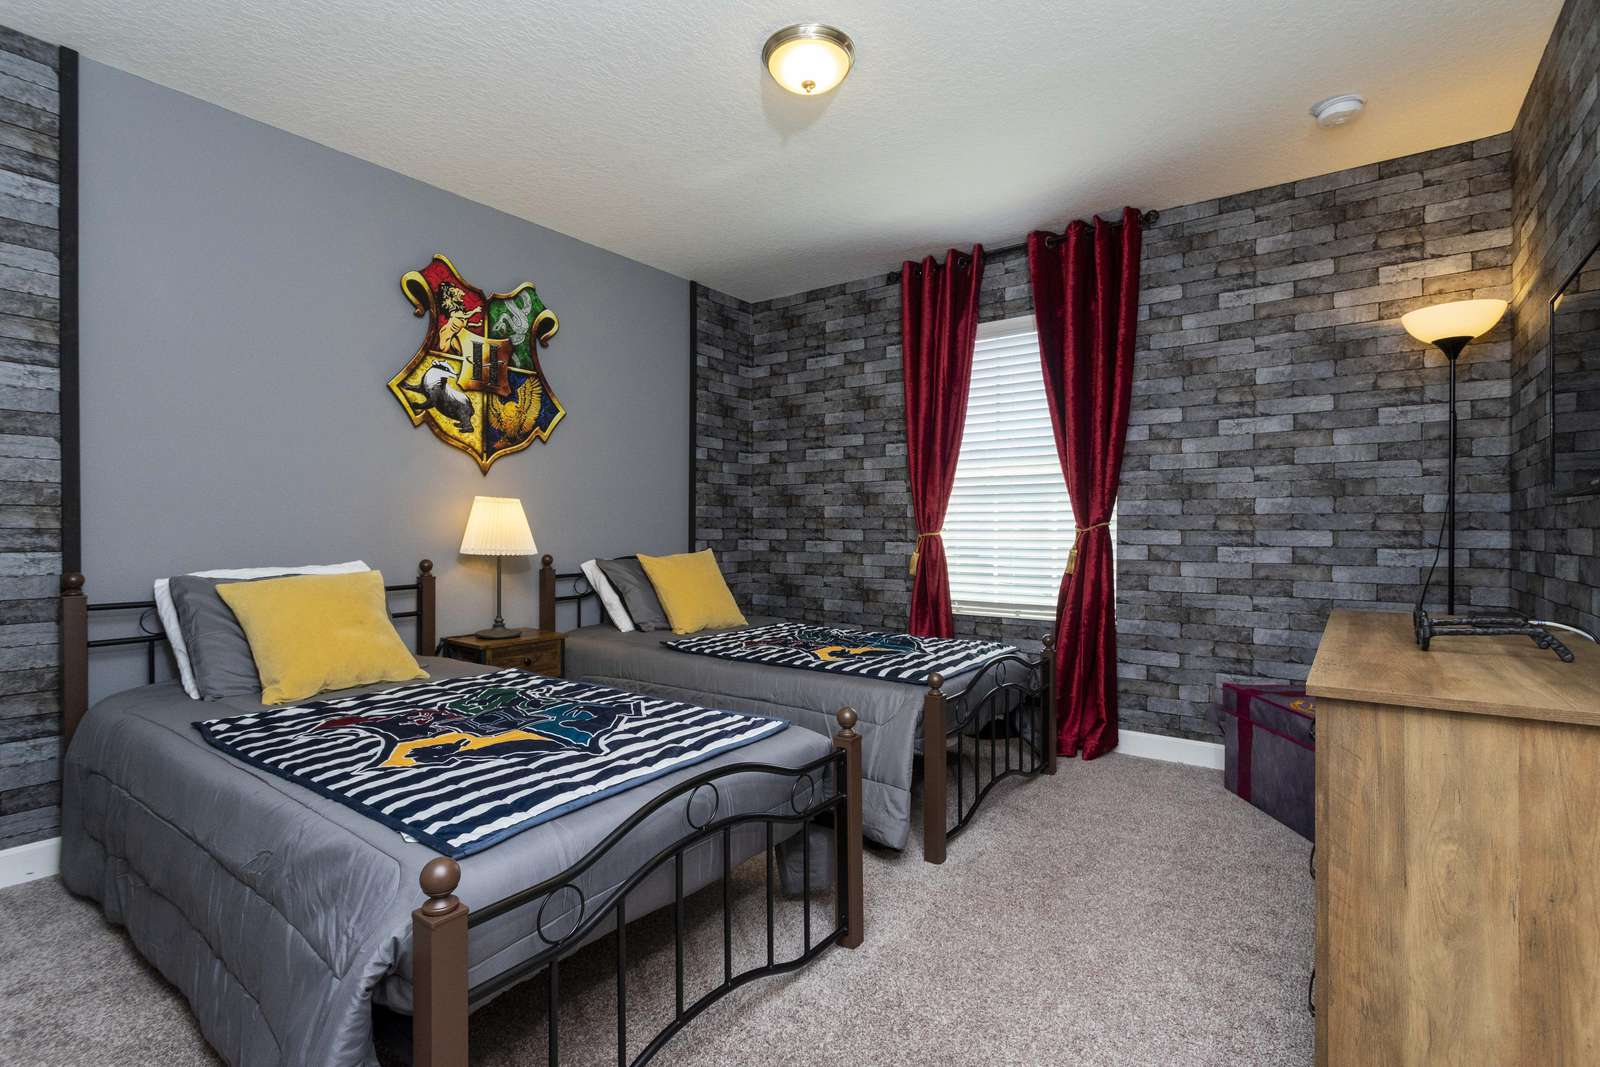 Harry Potter room 2 Twin Beds - property